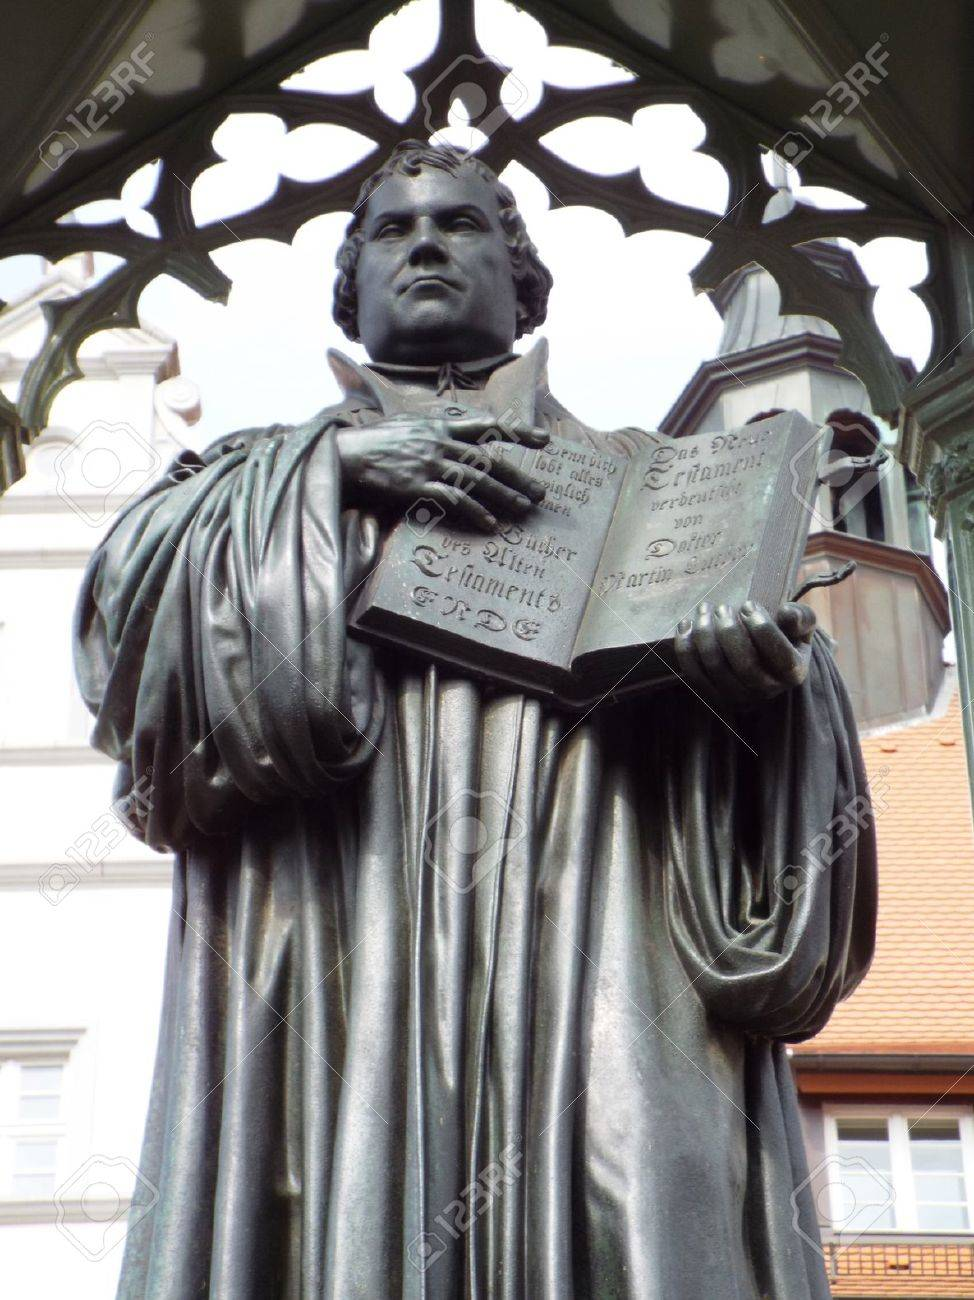 Monument Luther on the Market Place in front of the townhall, Wittenberg, Germany 04.12.2016 - At the door of the Castle Church in Wittenberg reformer Martin Luther nailed his 95 theses. By Luther and Melanchthon, the Wittenberg wurde the center of the Re - 69414725